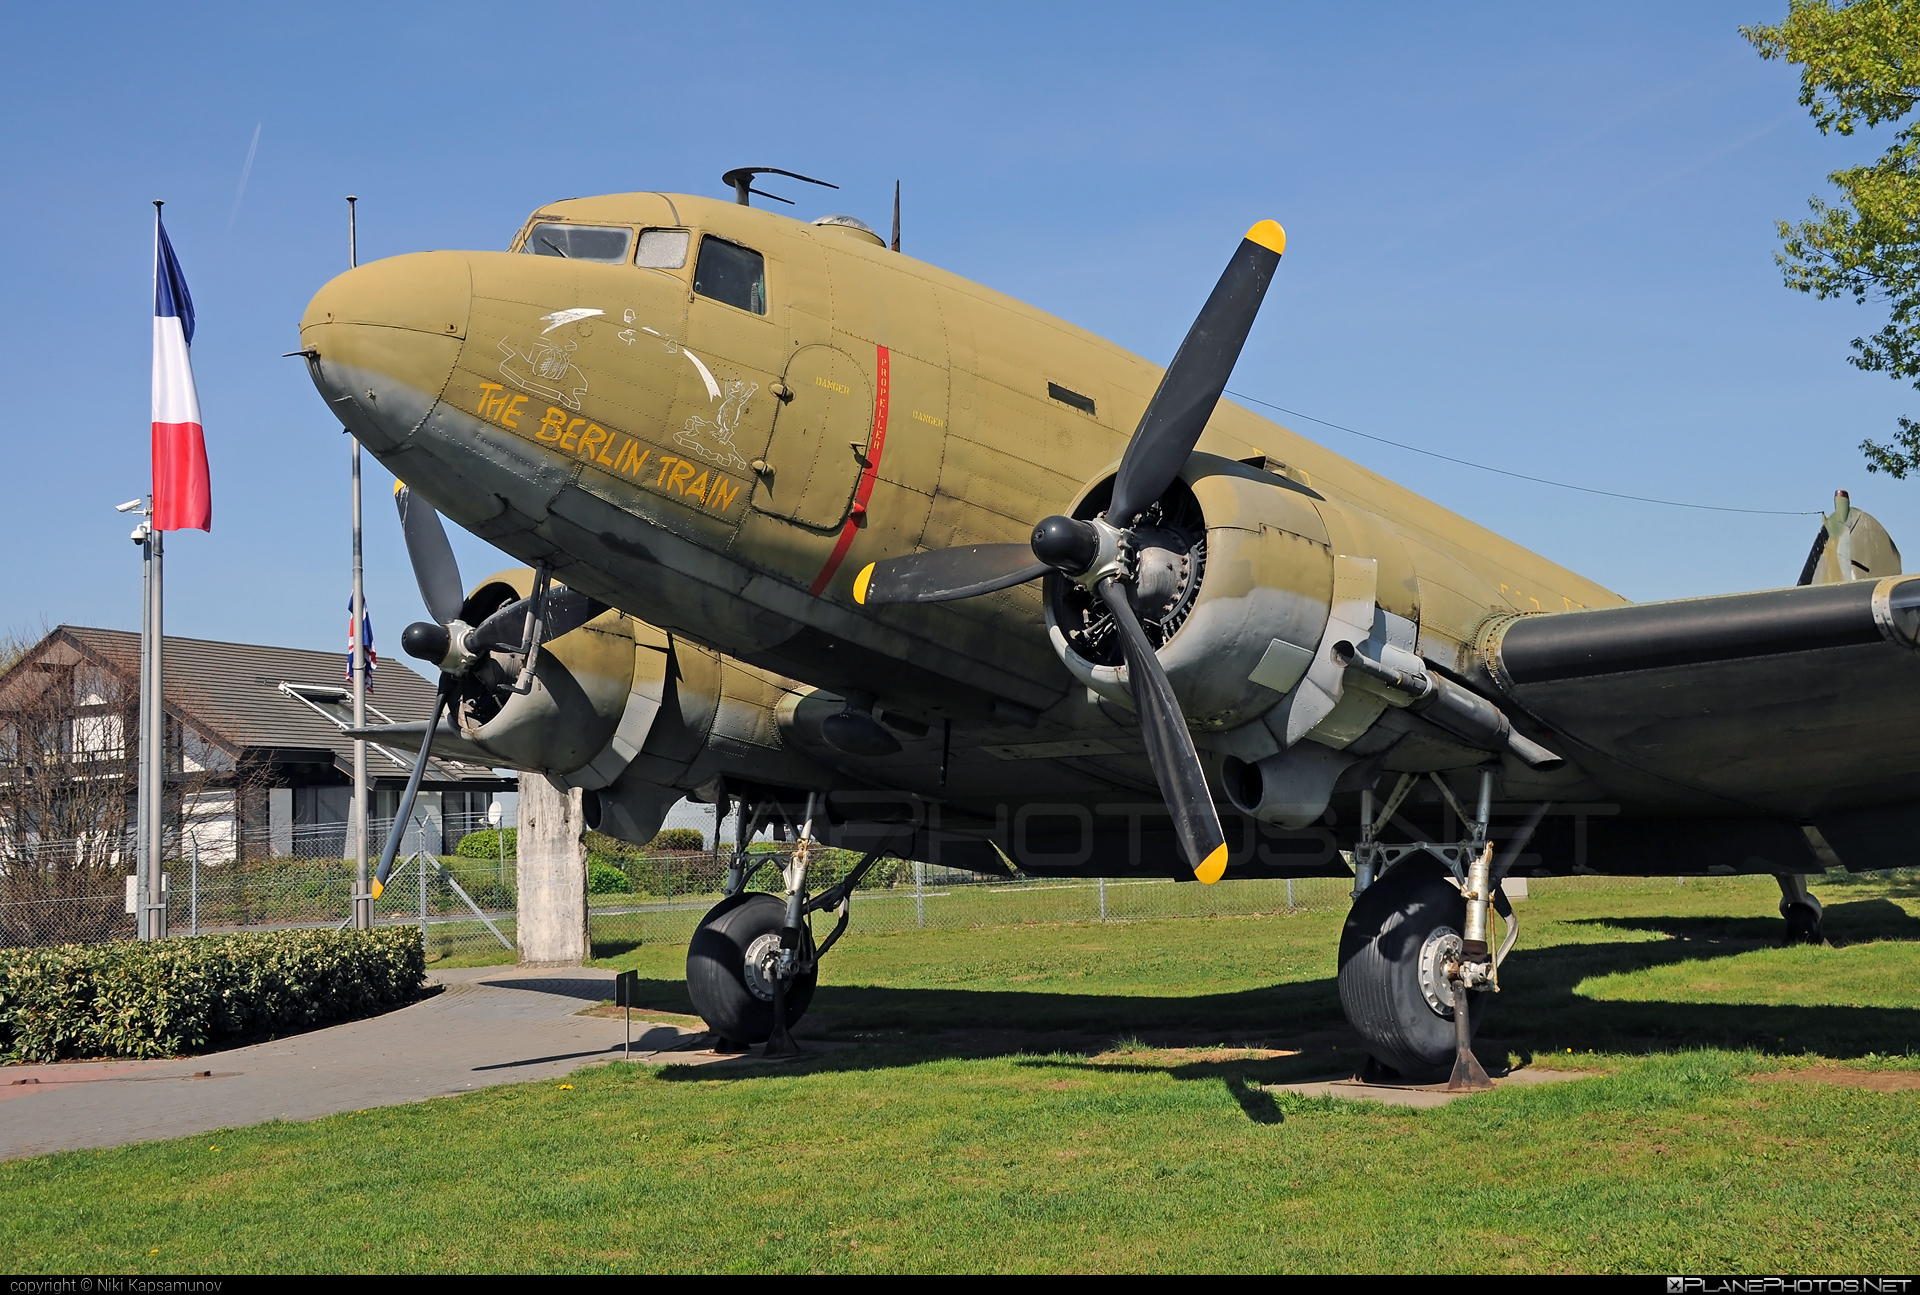 Douglas C-47D Skytrain - 43-49081 operated by US Air Force (USAF) #berlinairliftmemorial #c47 #dc3 #douglas #skytrain #theberlintrain #usaf #usairforce